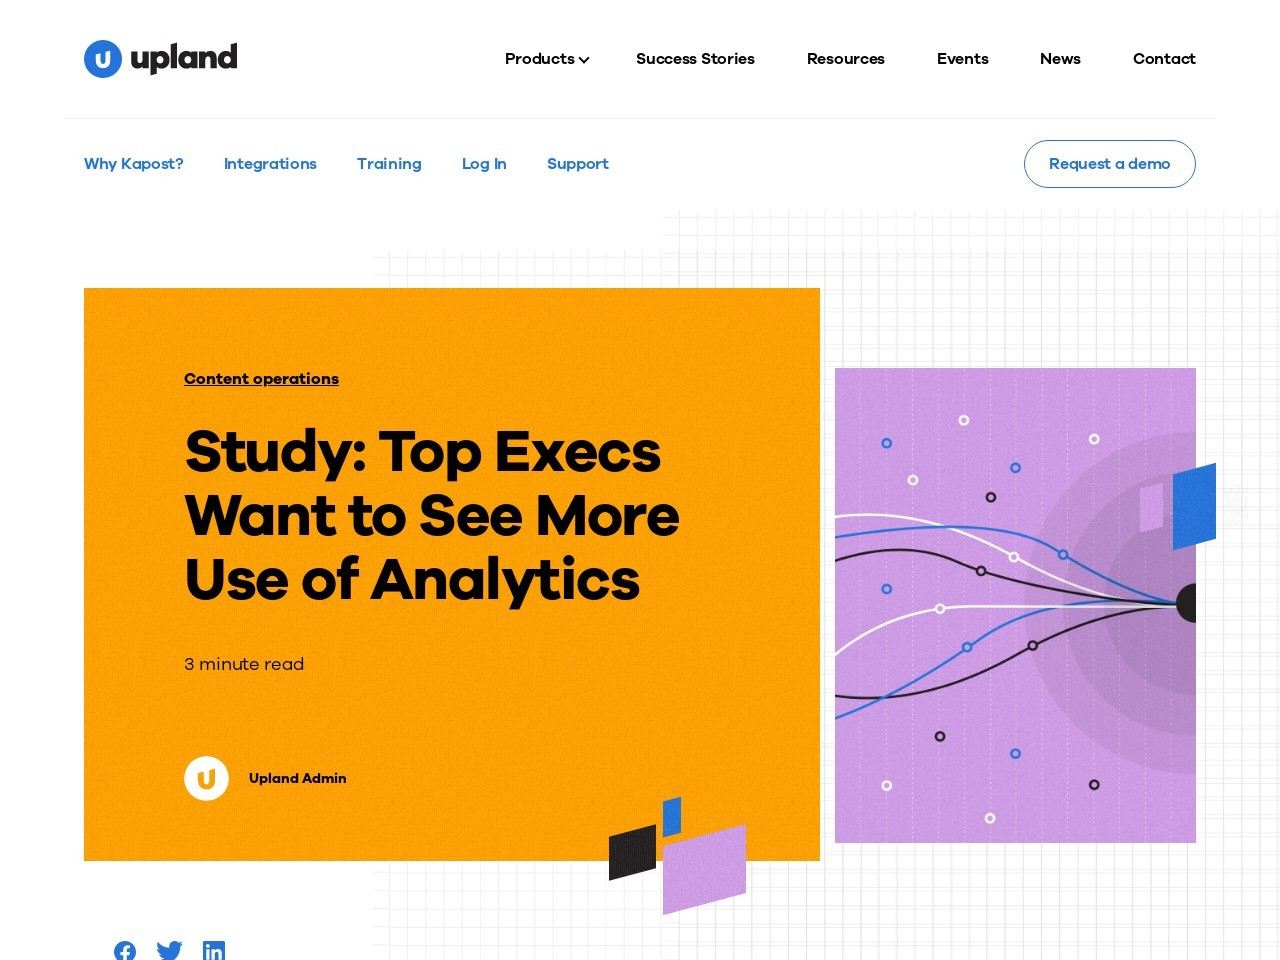 Global Execs Demand More Use of Analytics [New Research]